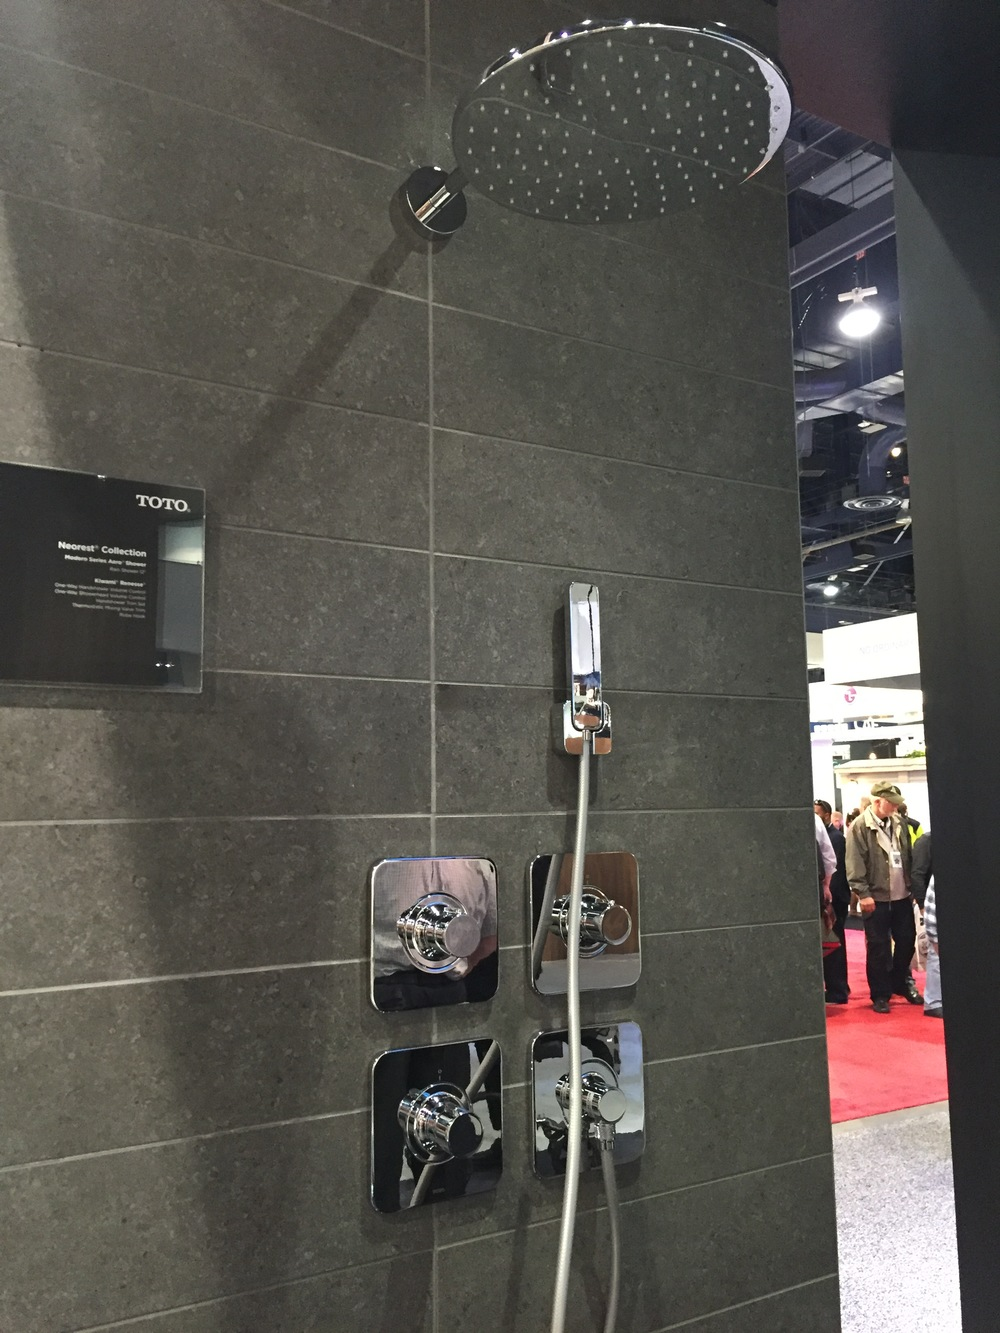 Shower hardware, KBIS 2016